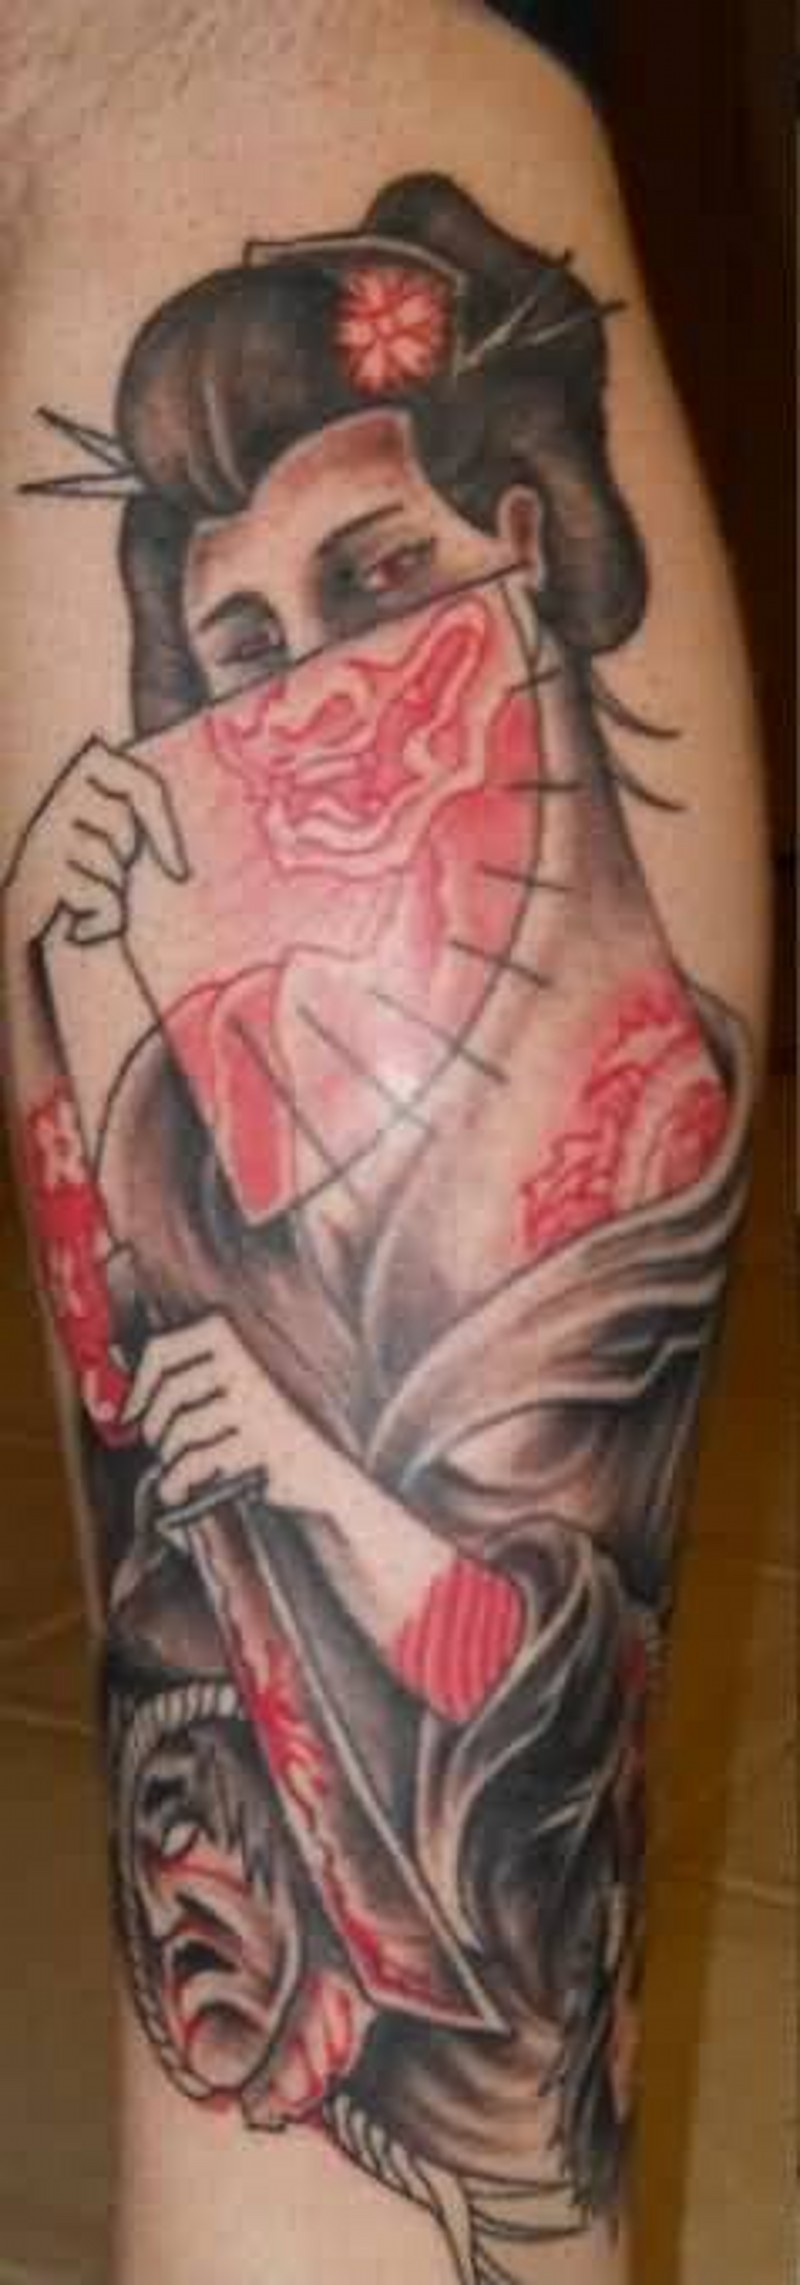 Homemade old school colored funny looking geisha tattoo with flower in hair